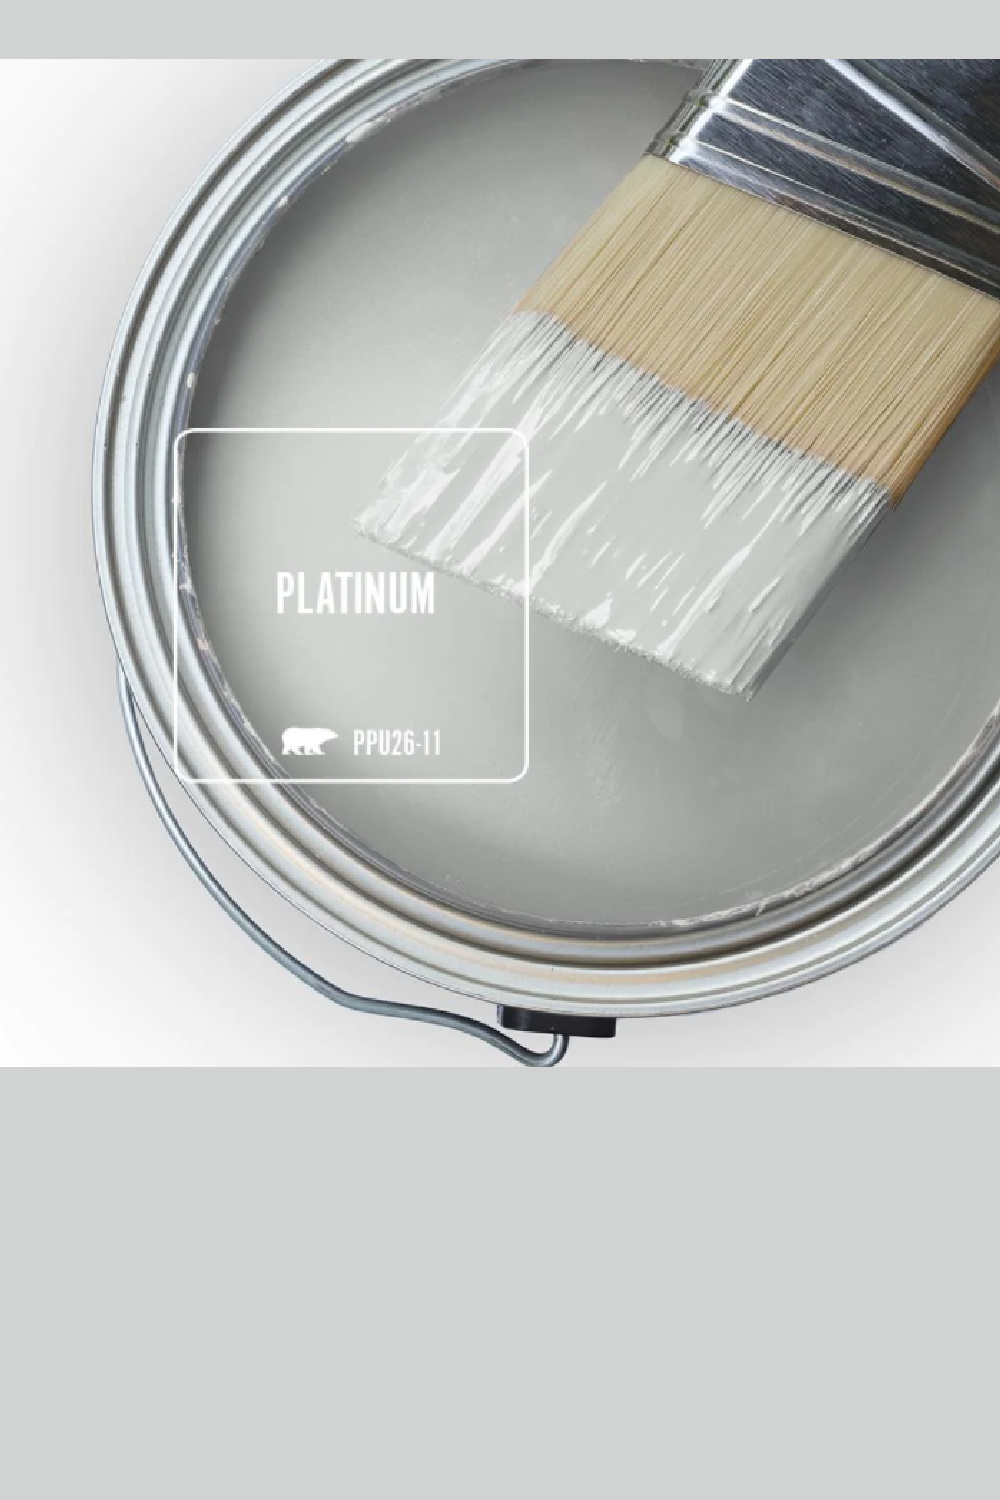 Behr Platinum paint color (an understated stone grey color) swatch. #platinum #behrplatinum #graypaintcolors